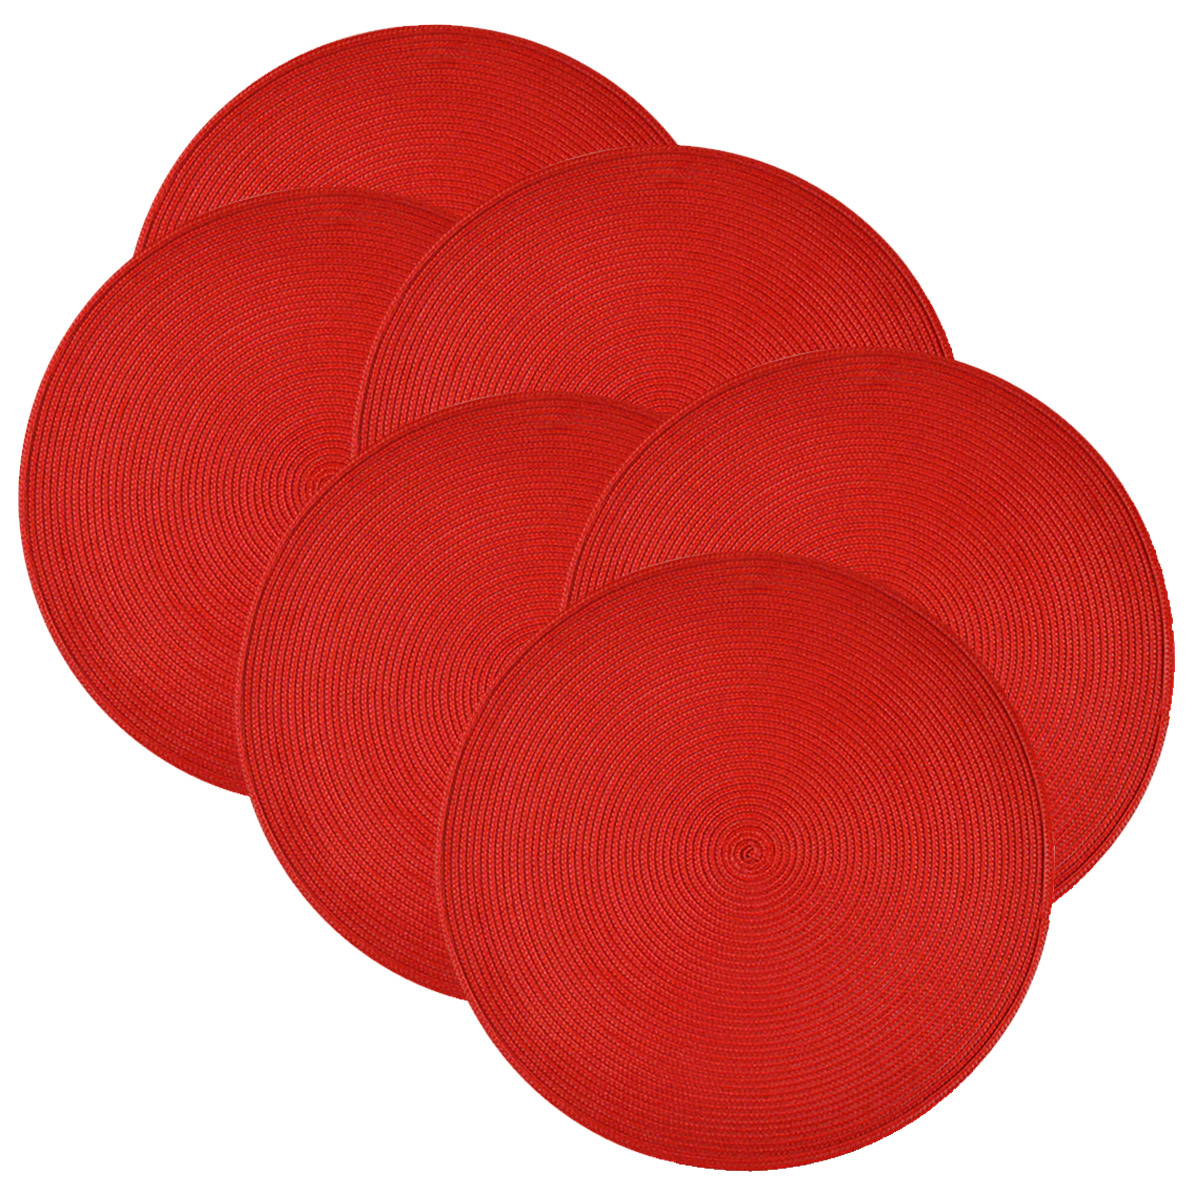 Design Imports Red Indoor Outdoor Placemat Set of 6 by Supplier Generic